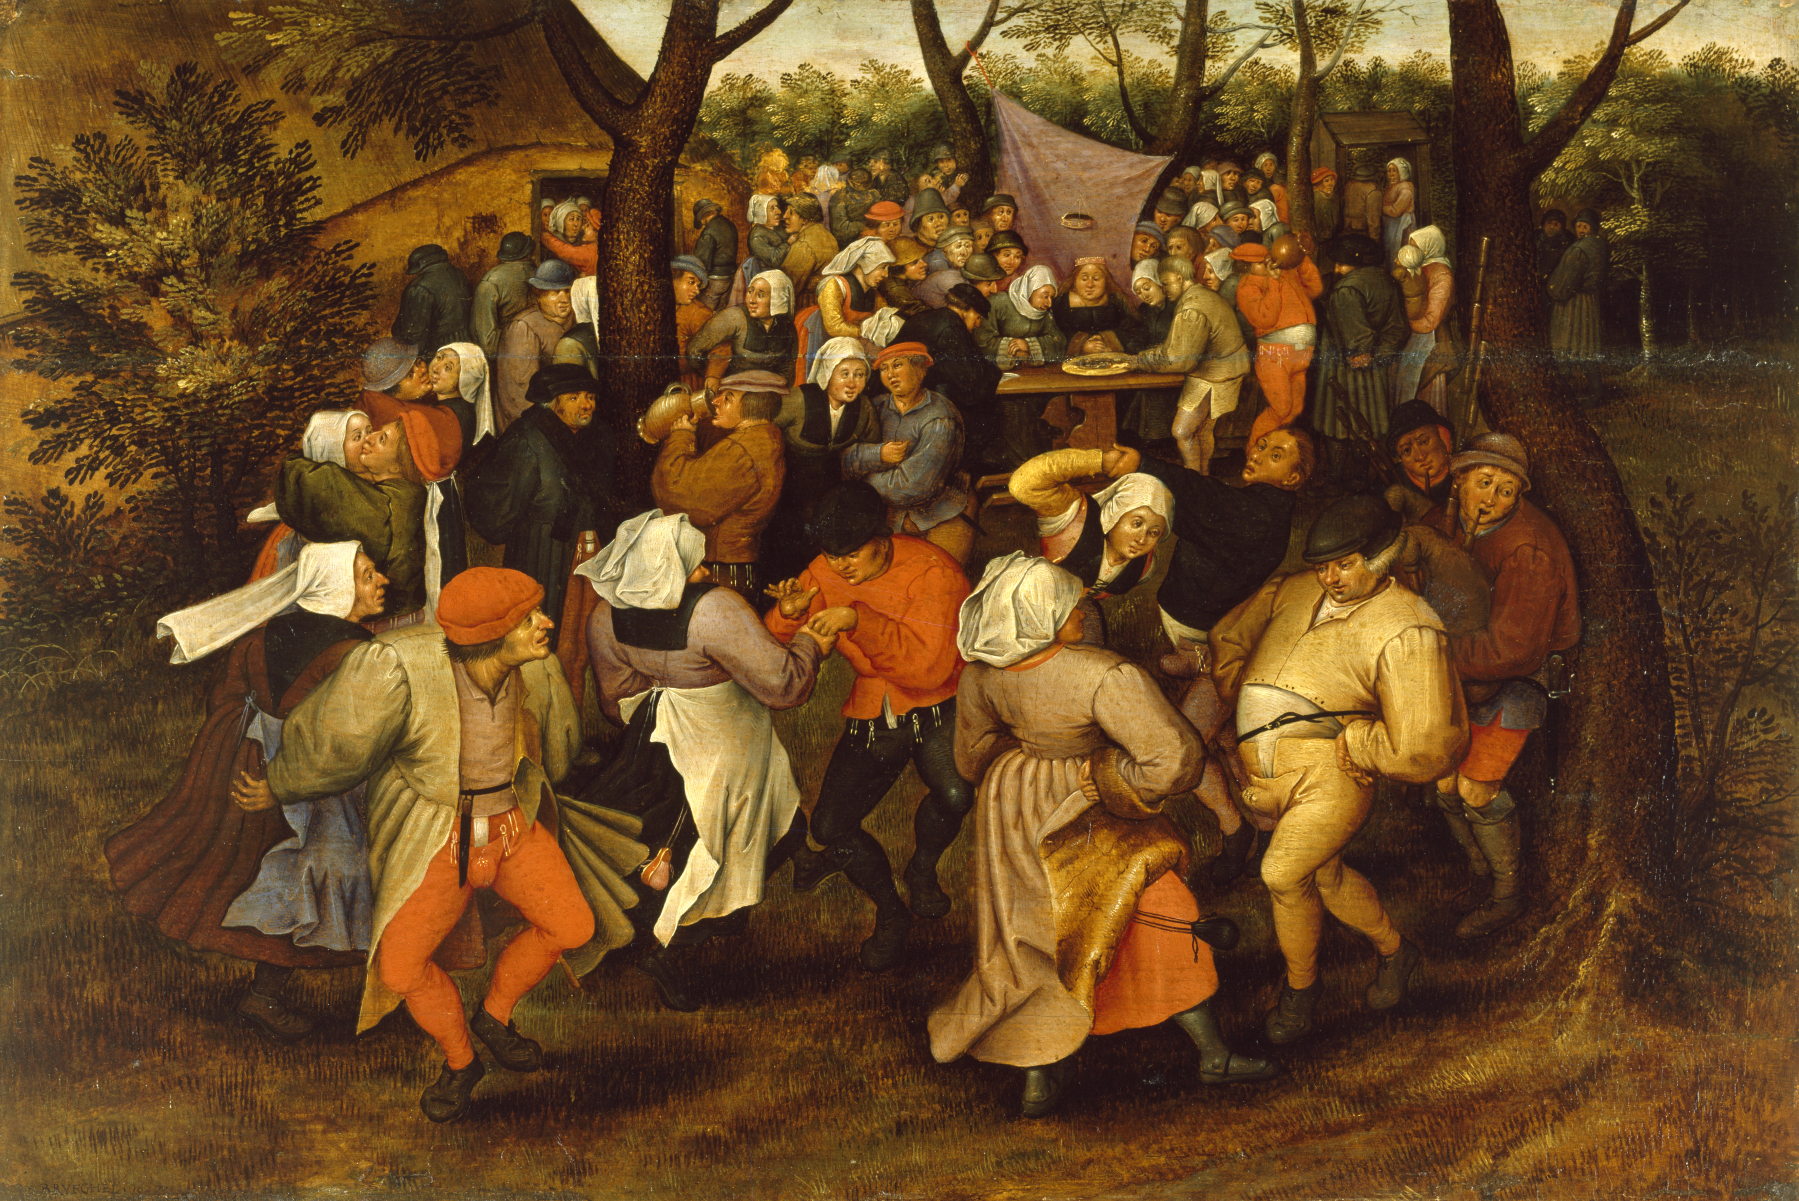 Pieter_Bruegel_II_-_Peasant_Wedding_Dance_-_Walters_37364